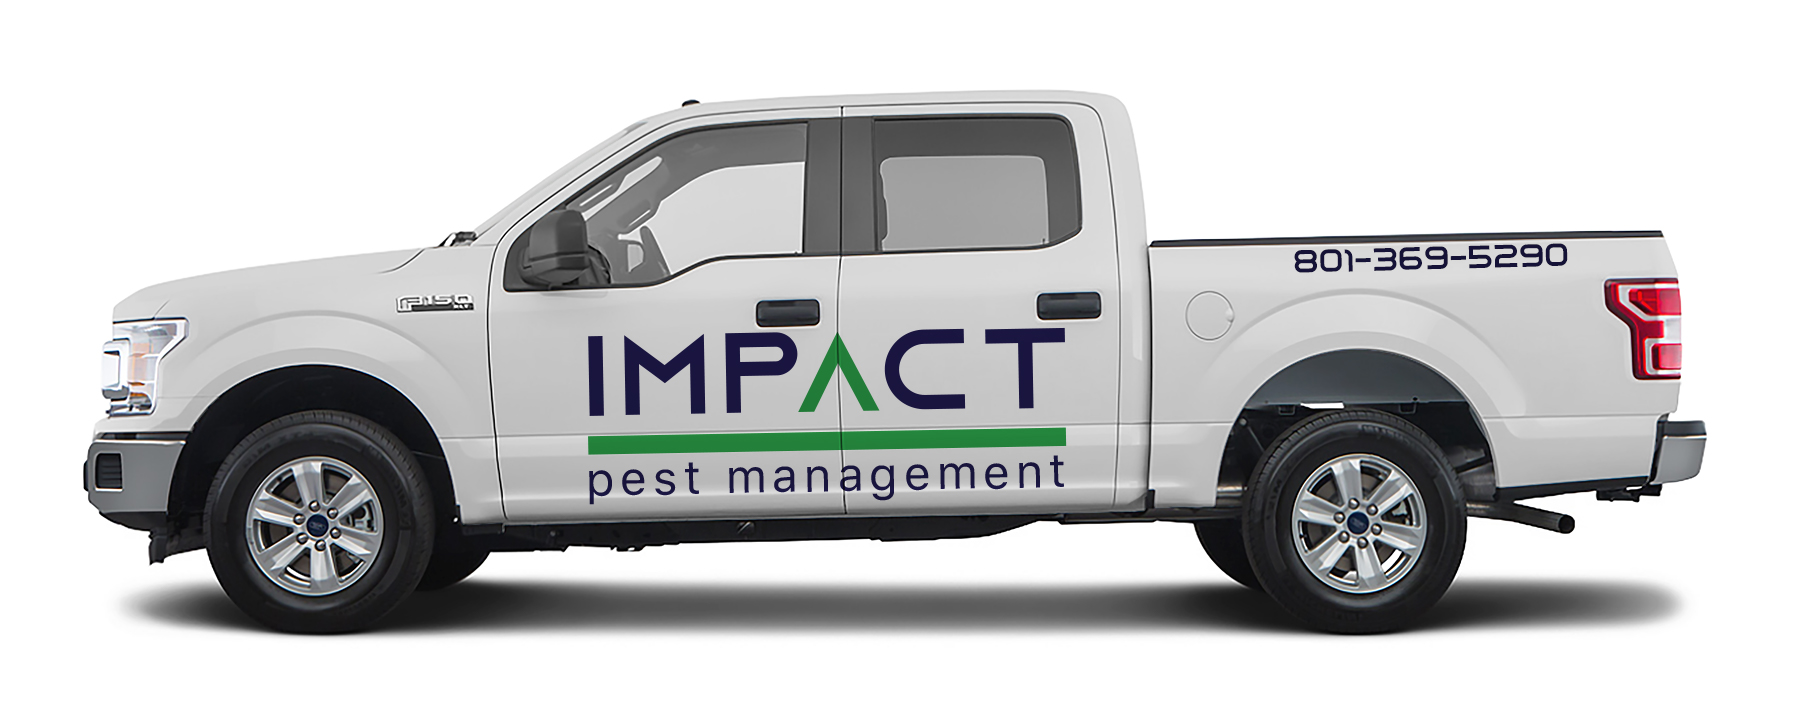 Impact Pest Management Ford F-150 Driver